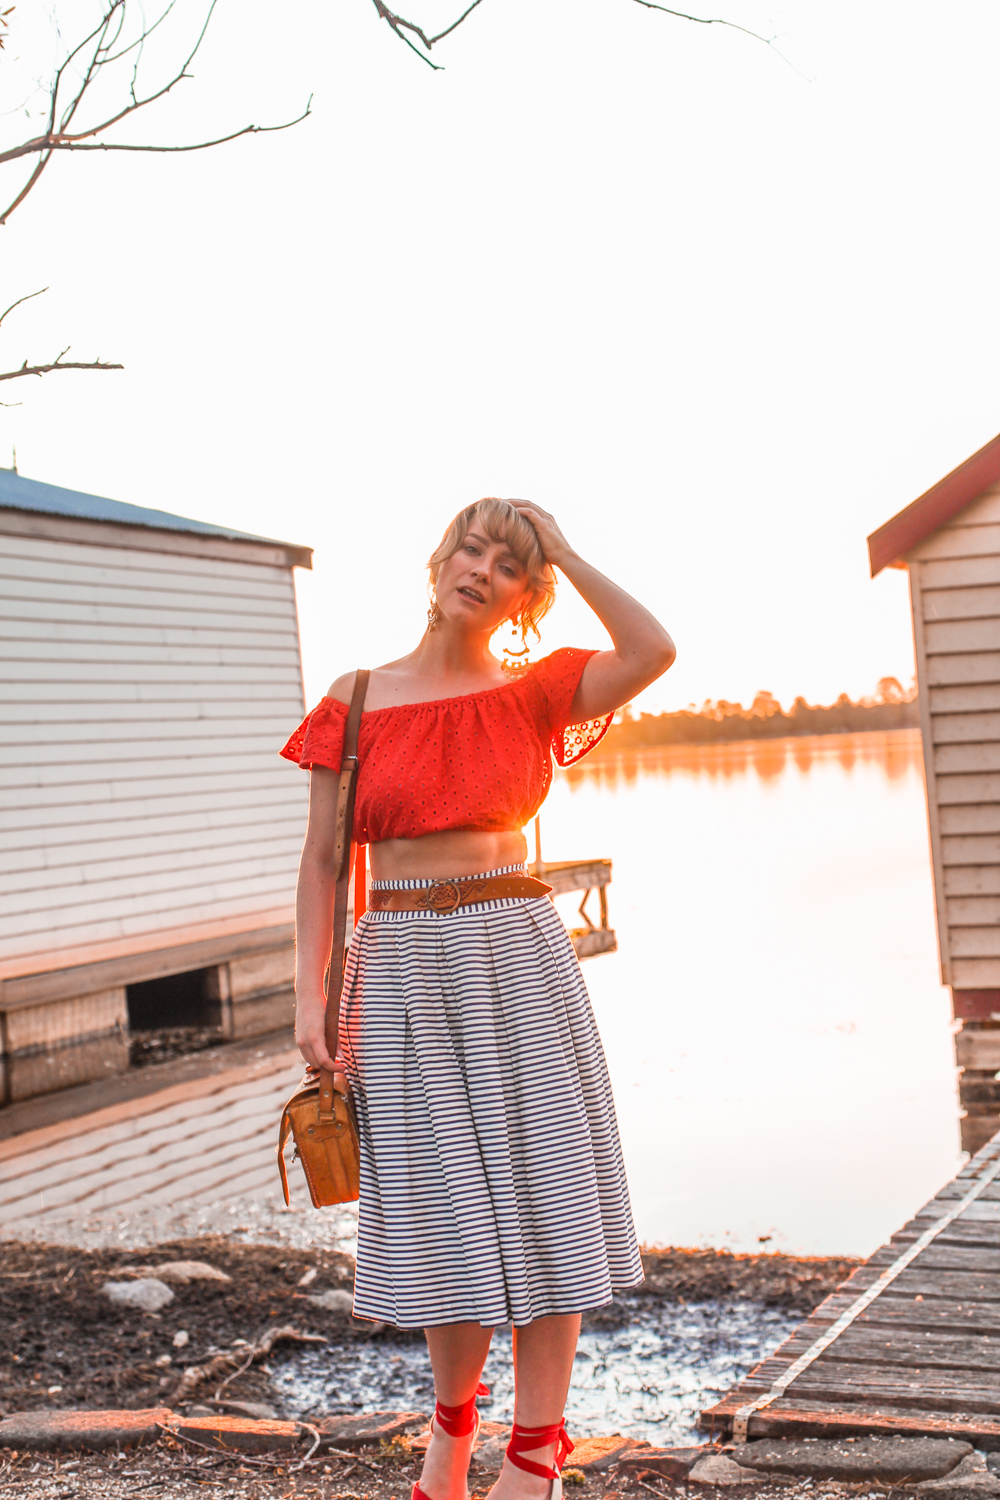 Liana of @findingfemme in Ballarat wearing ASOS cropped red lace top and striped skirt